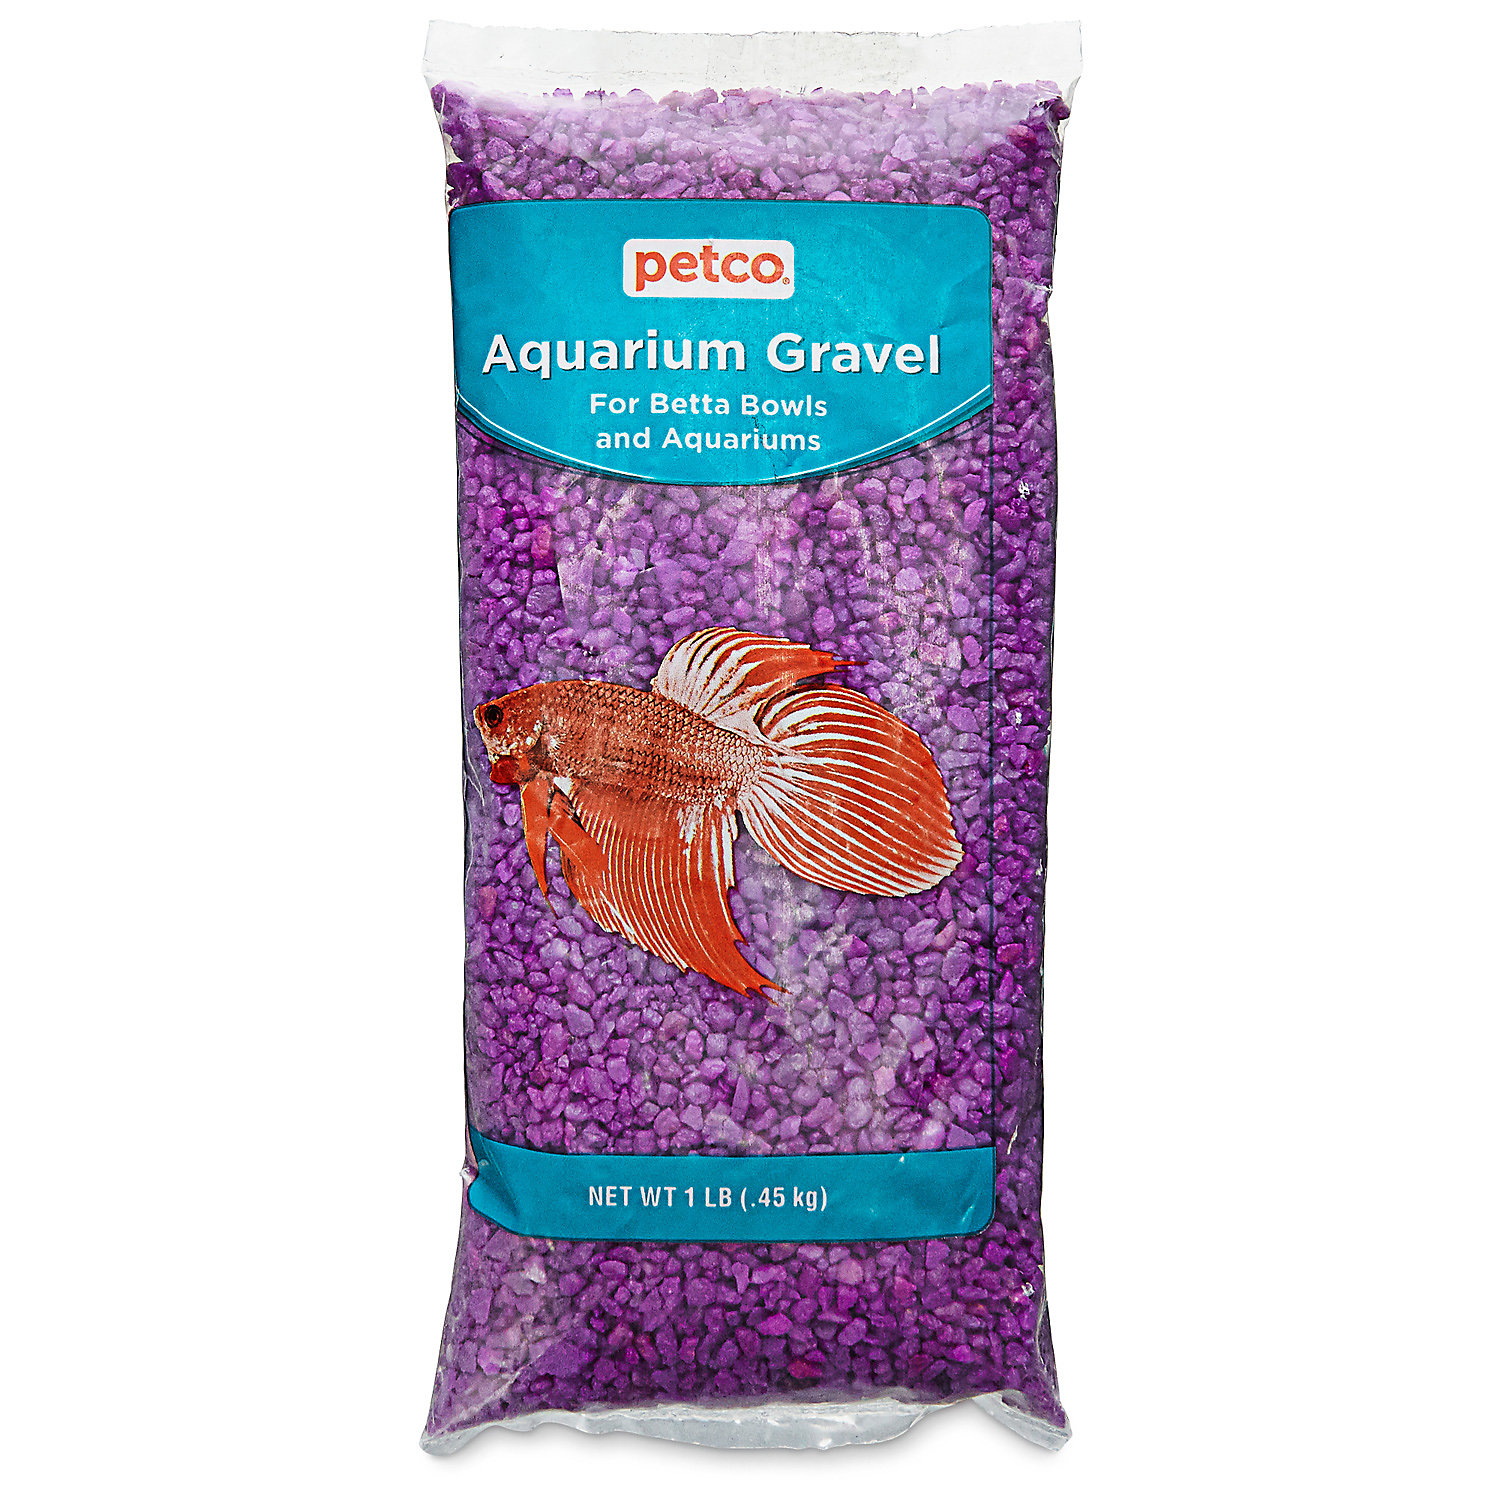 Fish aquarium gravel and substrate fish aquarium gravel for Betta fish tanks petco